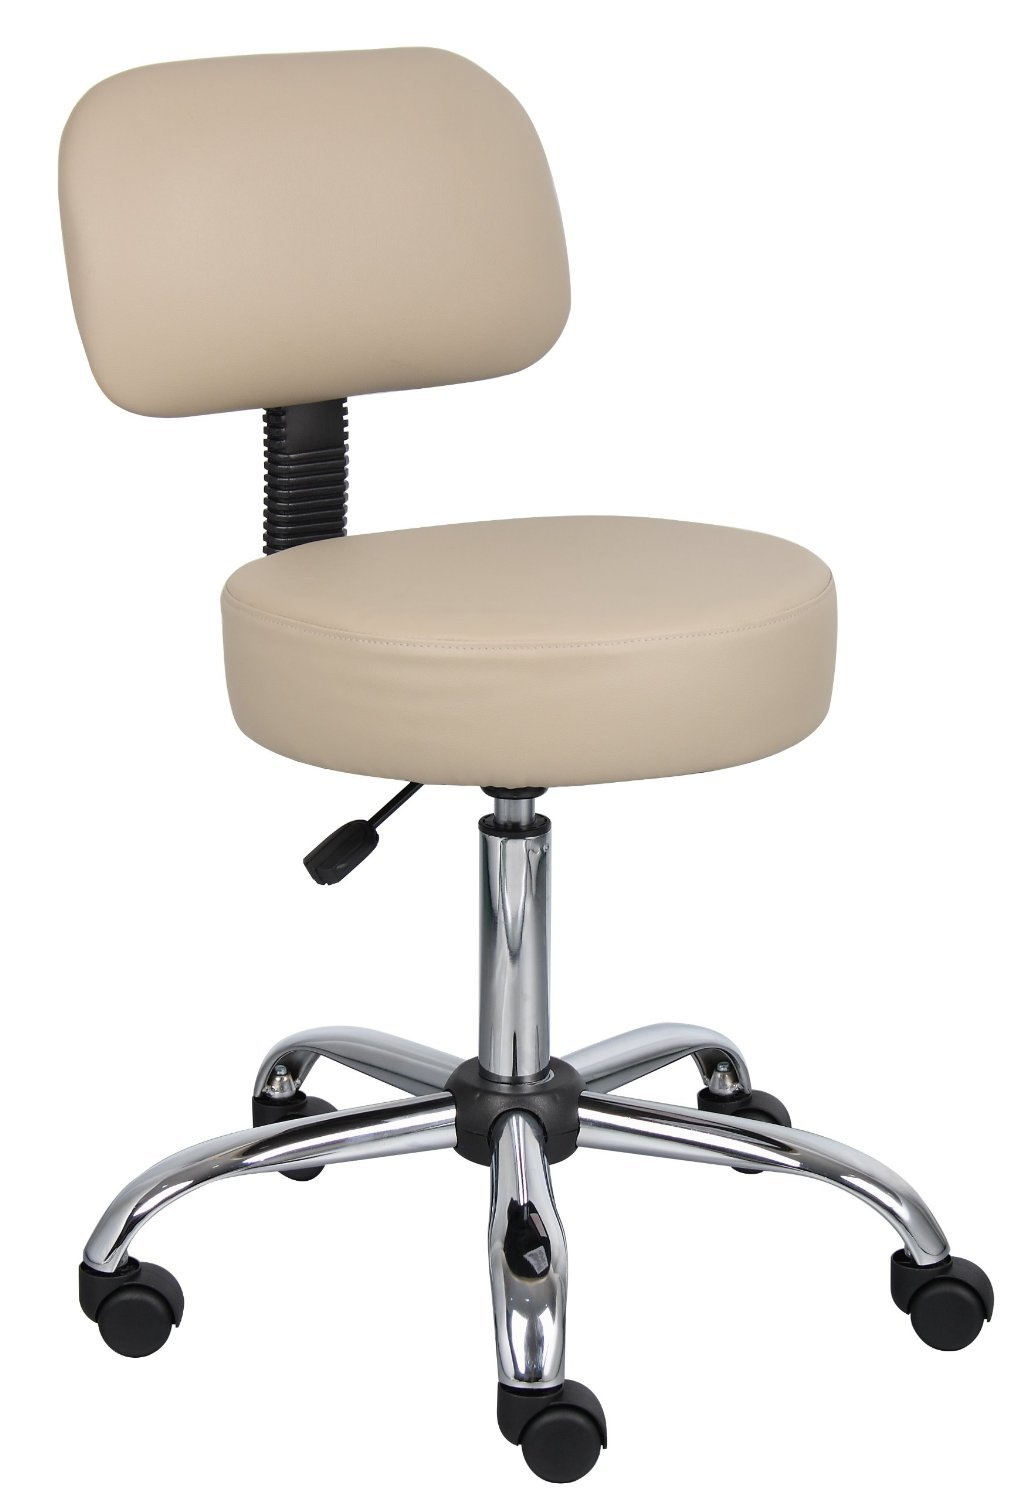 Nicer Furniture Medical Drafting Chair Salon Stool with Back Cushion Tattoo Hydraulic Chair (Beige) Office Chairs Canada